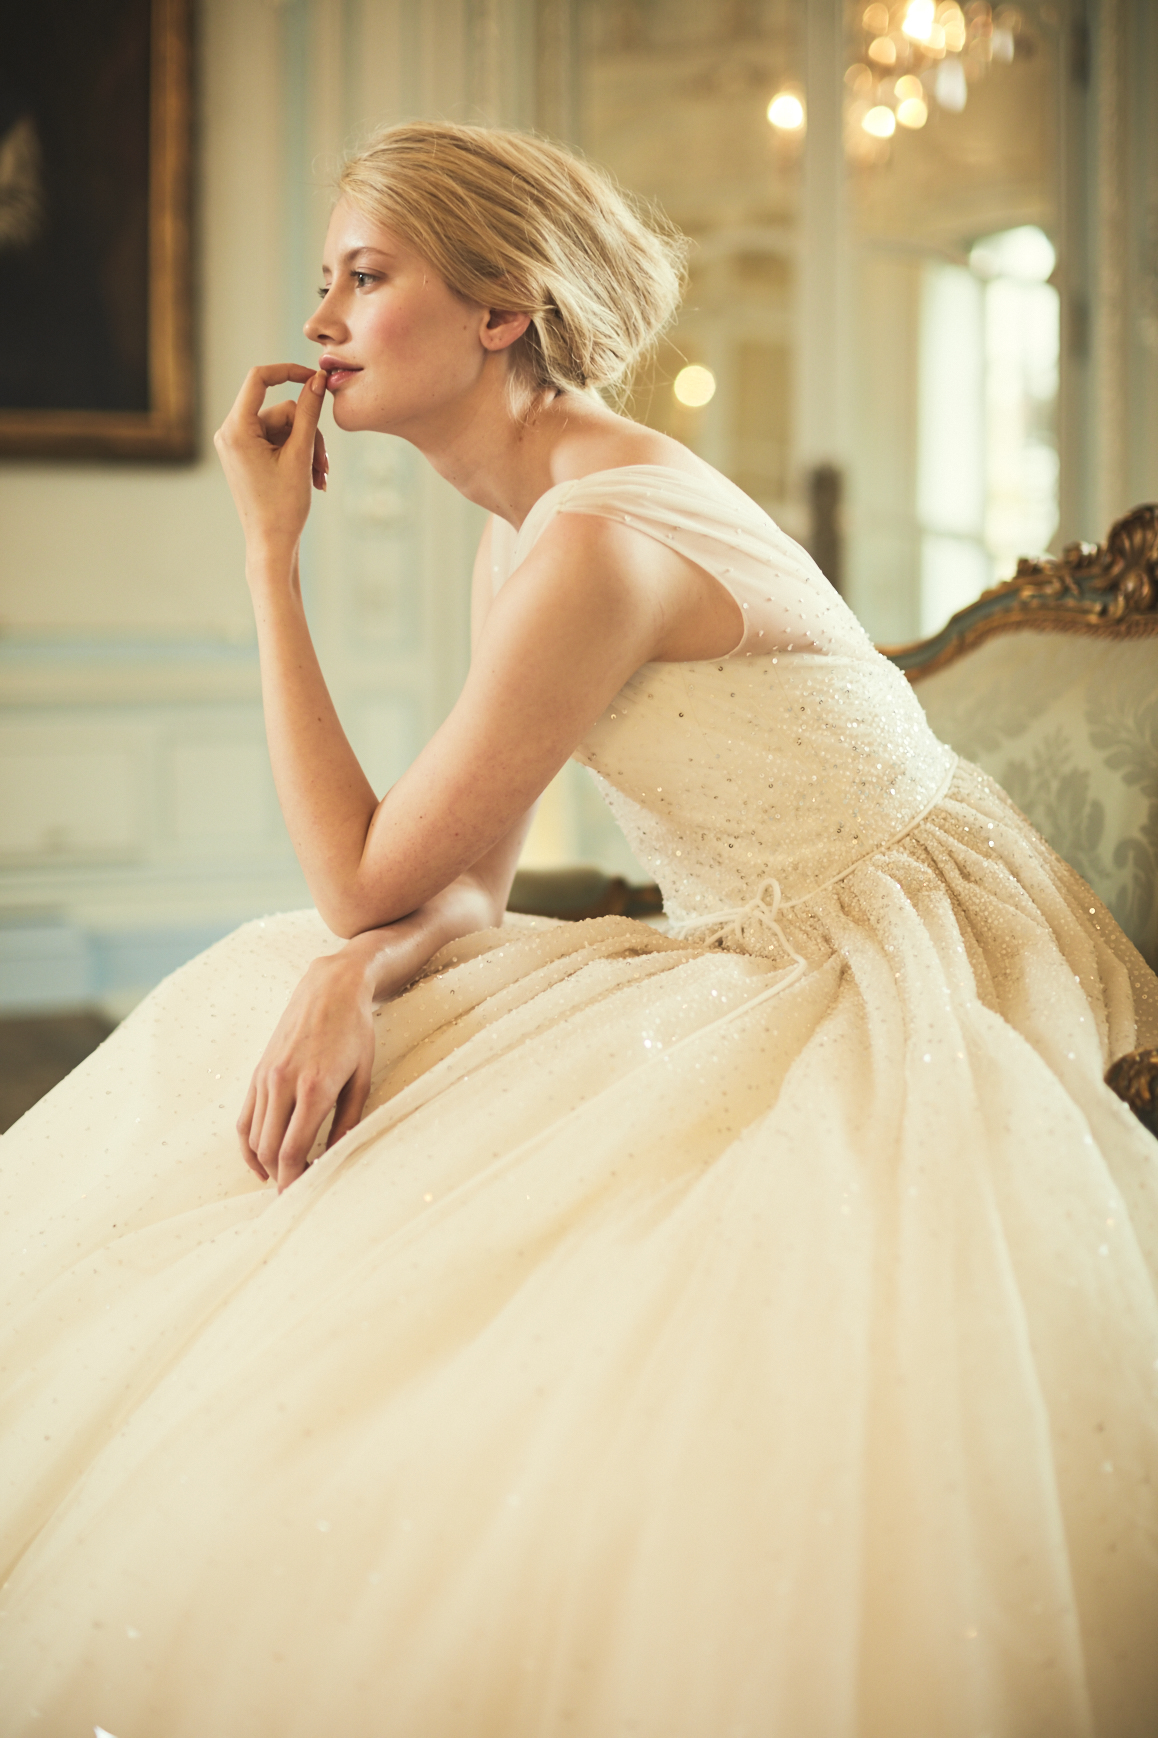 Phillipa Lepley Bespoke Weedding Dress - White_Cinderella_612